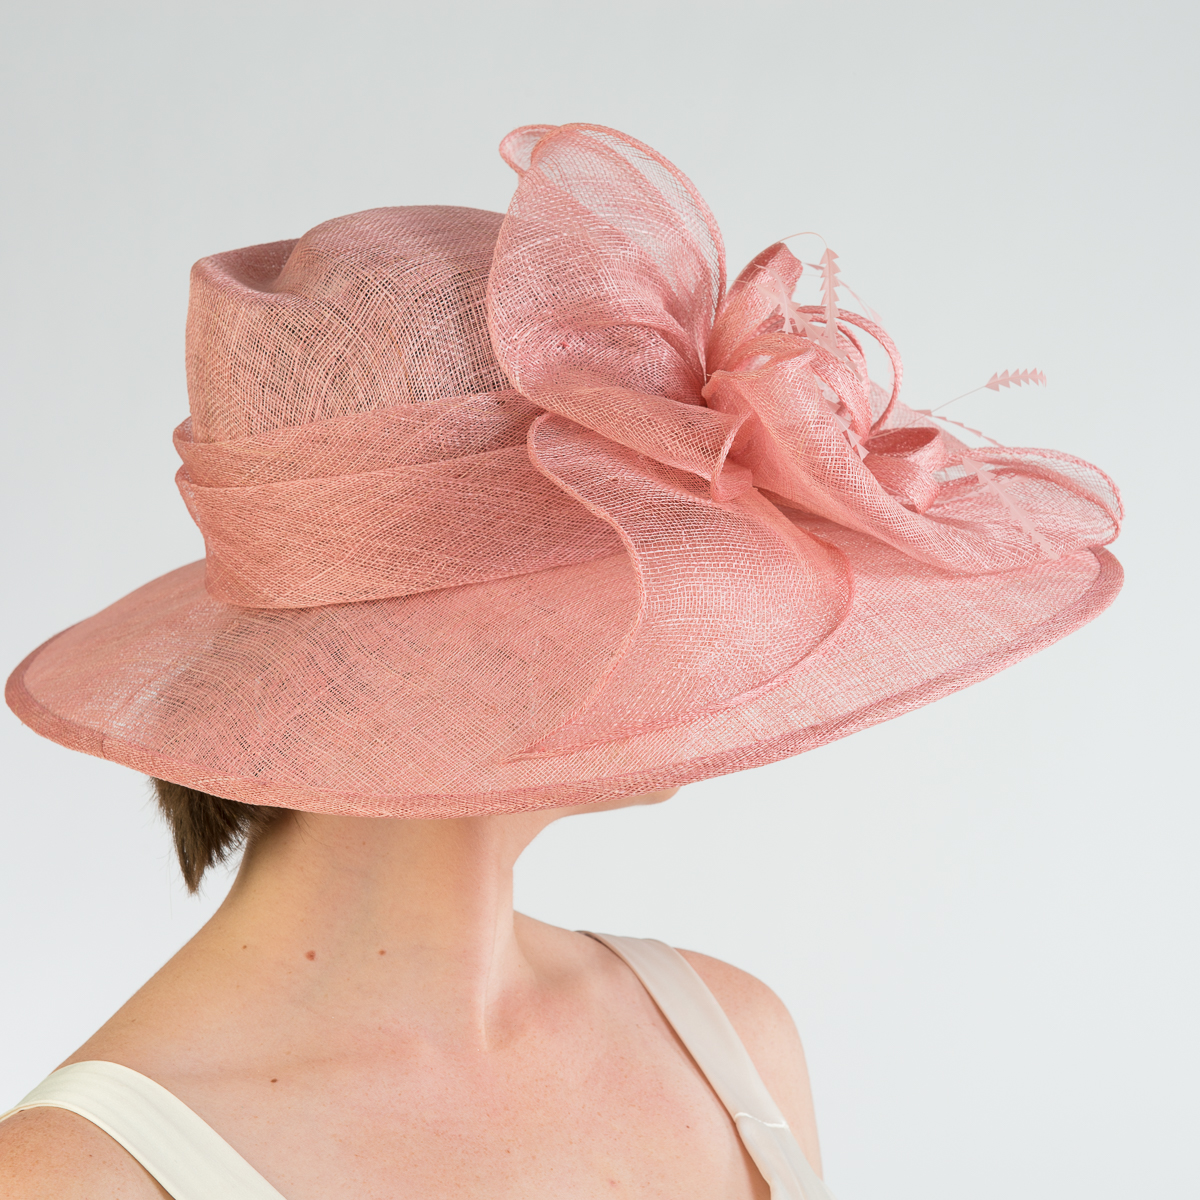 Turn heads with a Big Pink Hat Costume from Morph Costumes. Visit our site for a massive range of Halloween costumes for all occasions.